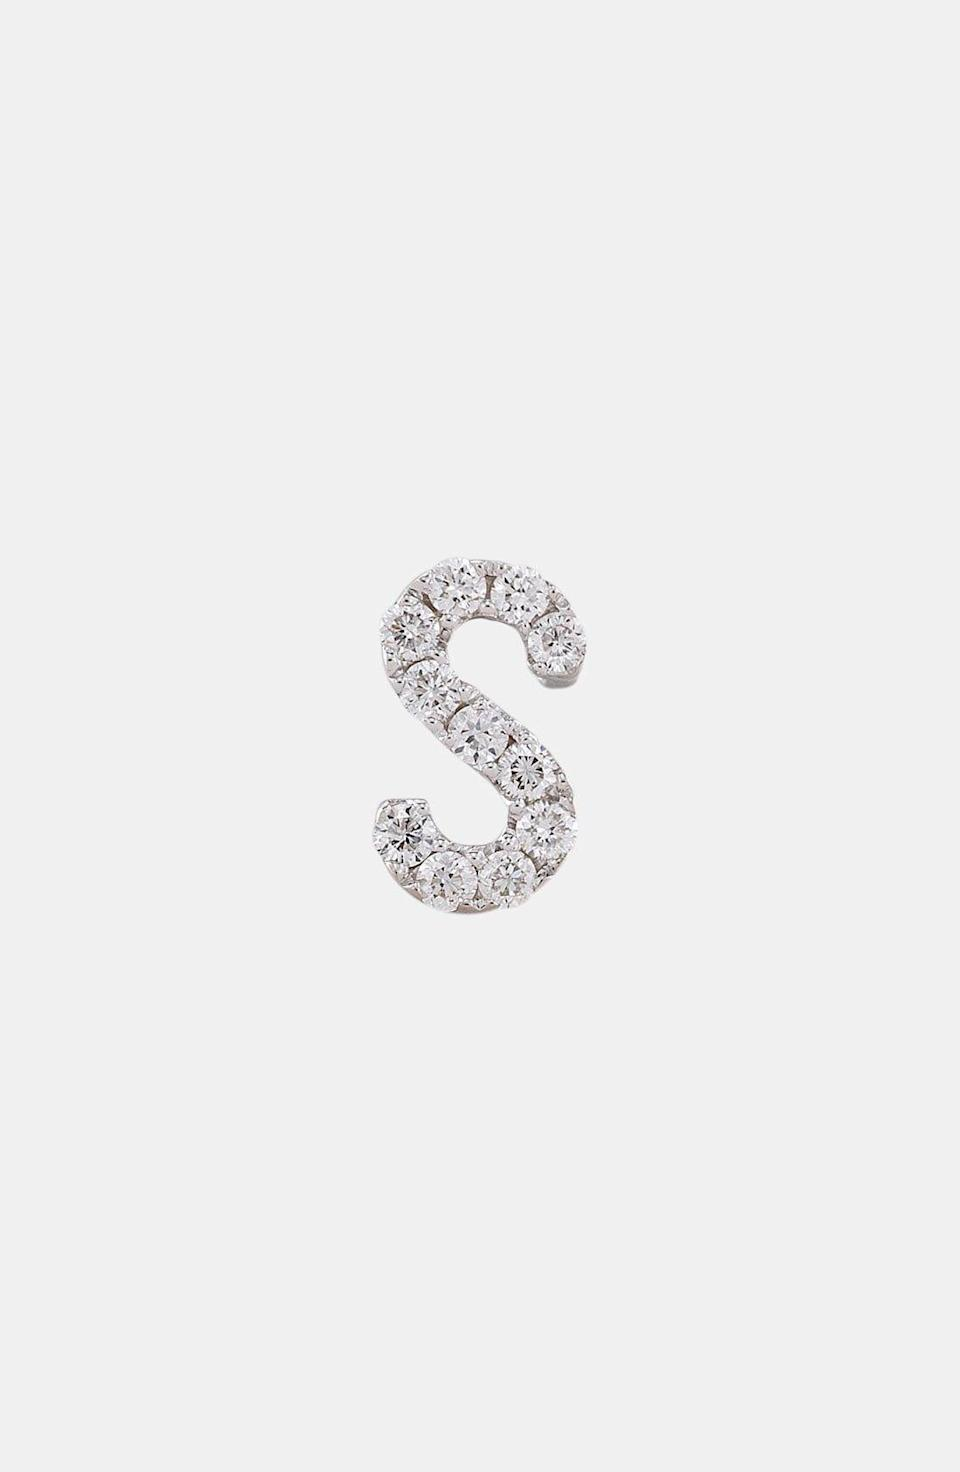 """<p><strong>BONY LEVY</strong></p><p>nordstrom.com</p><p><strong>$395.00</strong></p><p><a href=""""https://go.redirectingat.com?id=74968X1596630&url=https%3A%2F%2Fshop.nordstrom.com%2Fs%2Fbony-levy-single-initial-earring-nordstrom-exclusive%2F3503351&sref=https%3A%2F%2Fwww.harpersbazaar.com%2Ffashion%2Ftrends%2Fg34435299%2Fbest-custom-jewelry%2F"""" rel=""""nofollow noopener"""" target=""""_blank"""" data-ylk=""""slk:Shop Now"""" class=""""link rapid-noclick-resp"""">Shop Now</a></p><p>Small but impactful, this single diamond initial earring will add a personalized shine to her earring game. </p>"""